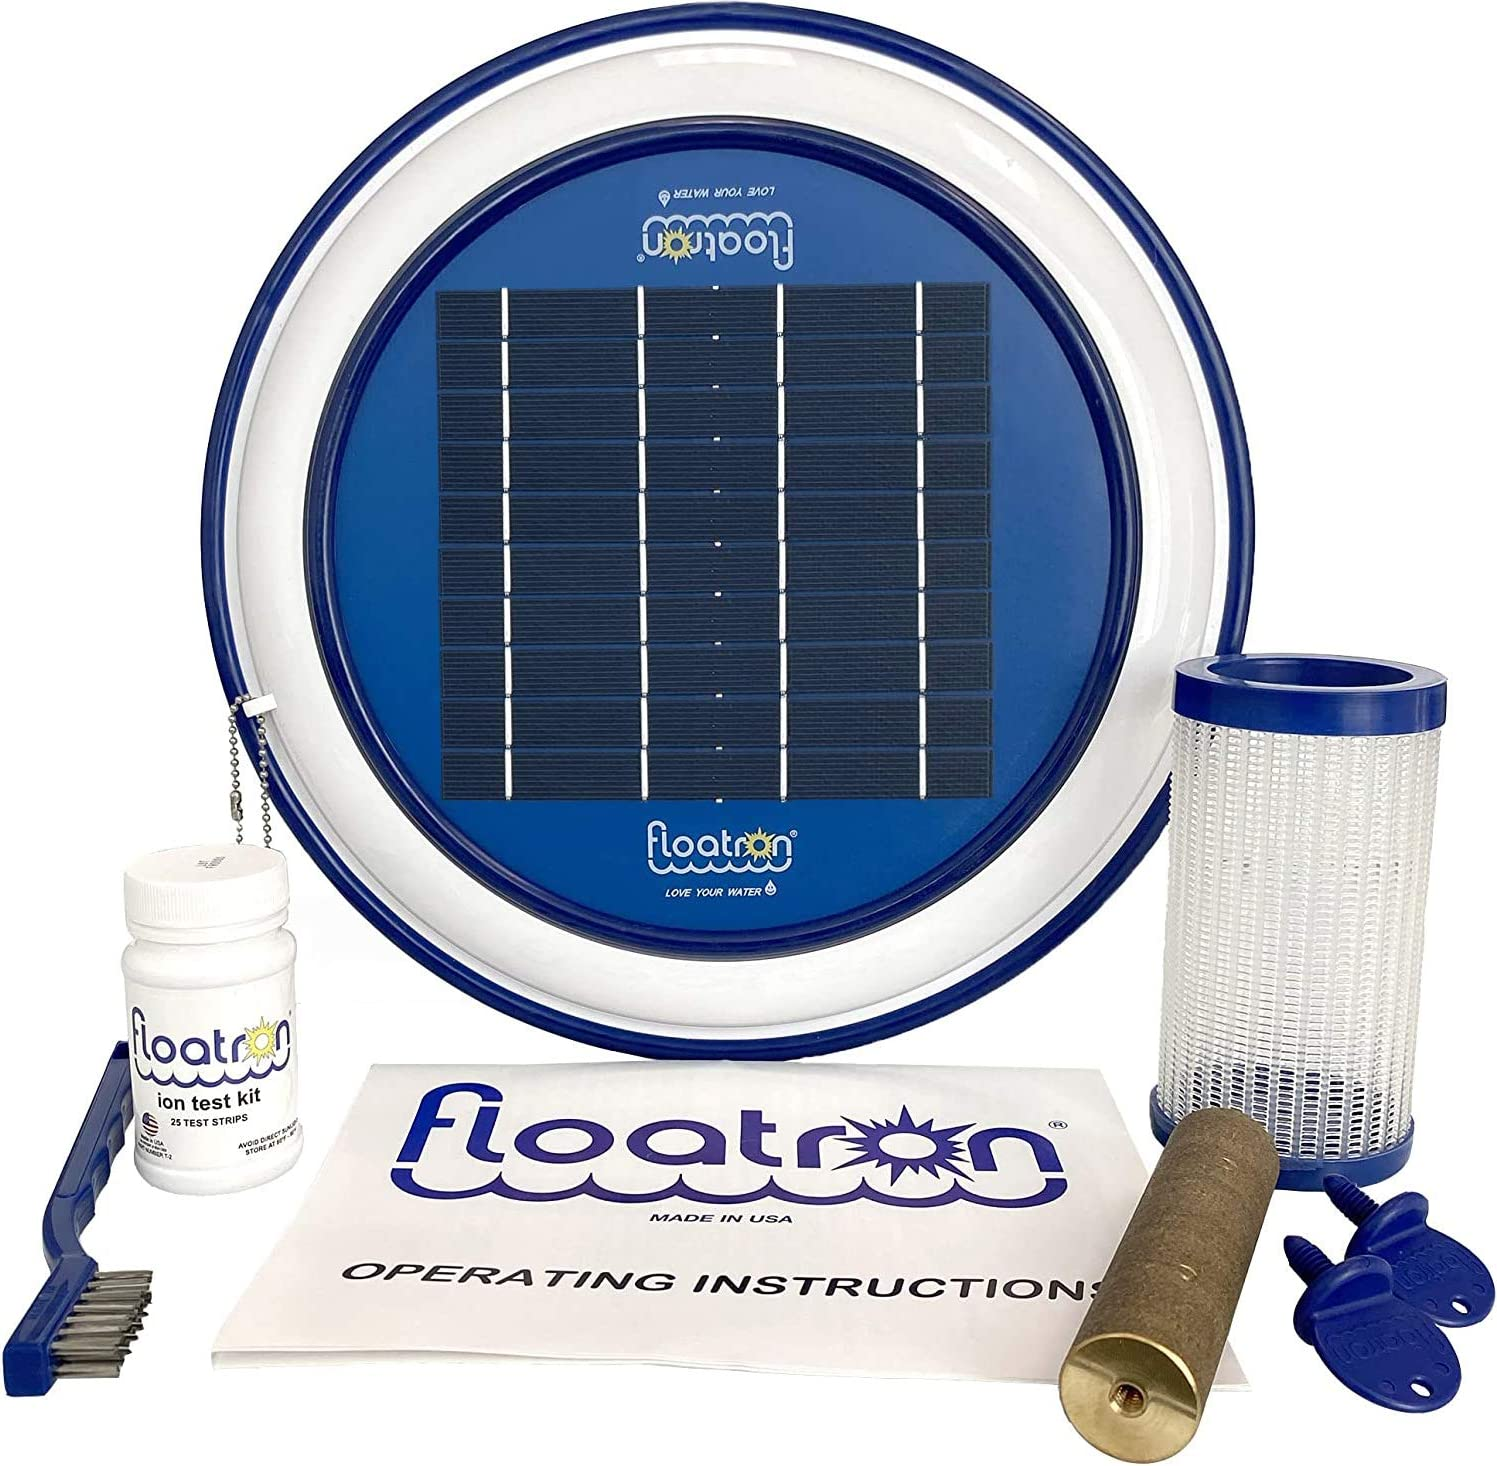 floatron Original Solar Powered Water Purifier/Ionizer - Naturally Mineralized Pool Water